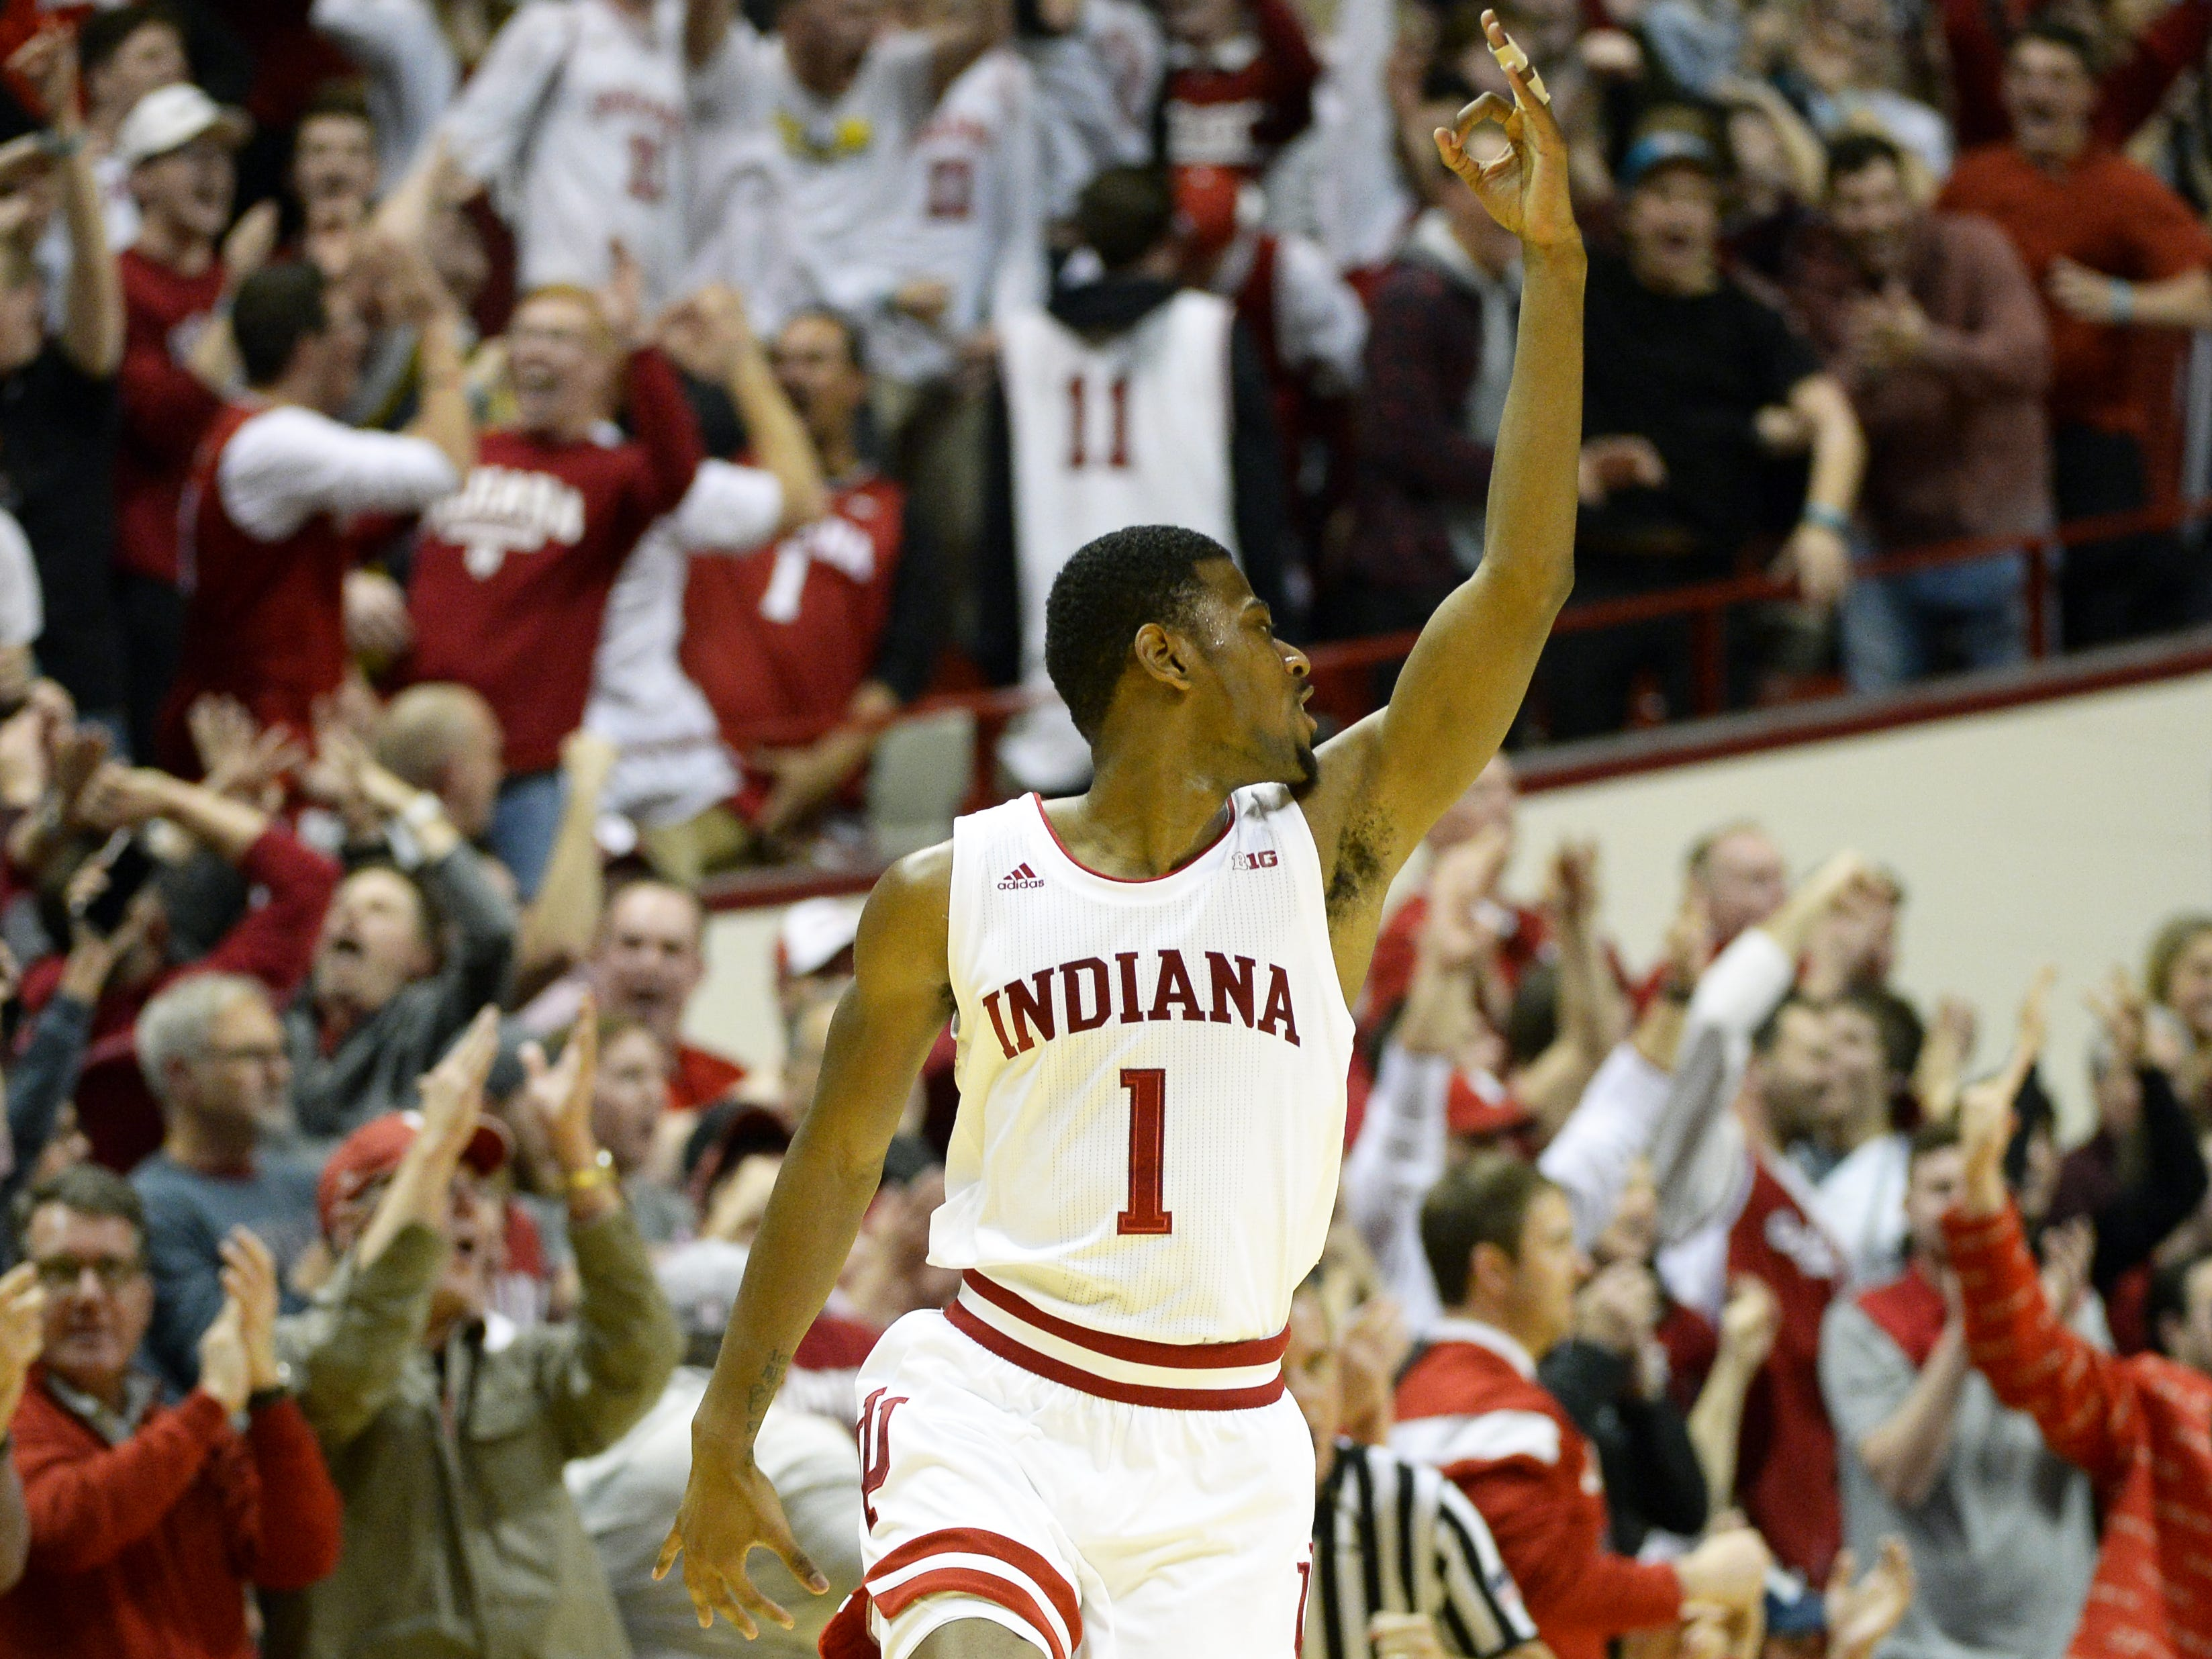 Indiana Hoosiers guard Al Durham (1) celebrates after making a shot during the game against Iowa at Simon Skjodt Assembly Hall in Bloomington Ind., on Thursday, Feb. 7, 2019.